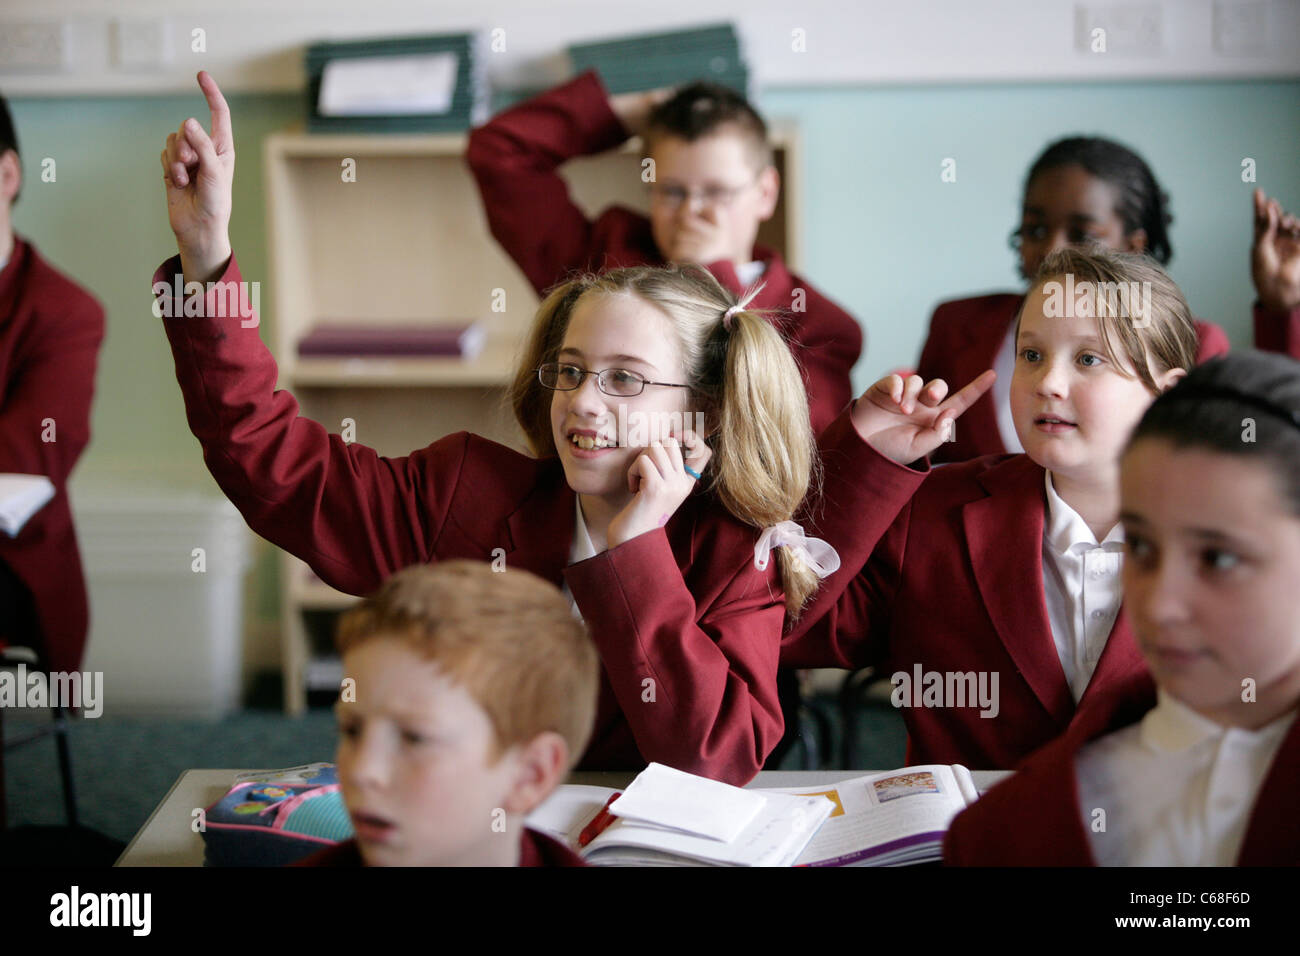 A pupil in a secondary school in the UK puts her hand up during a lesson to answer a question. - Stock Image